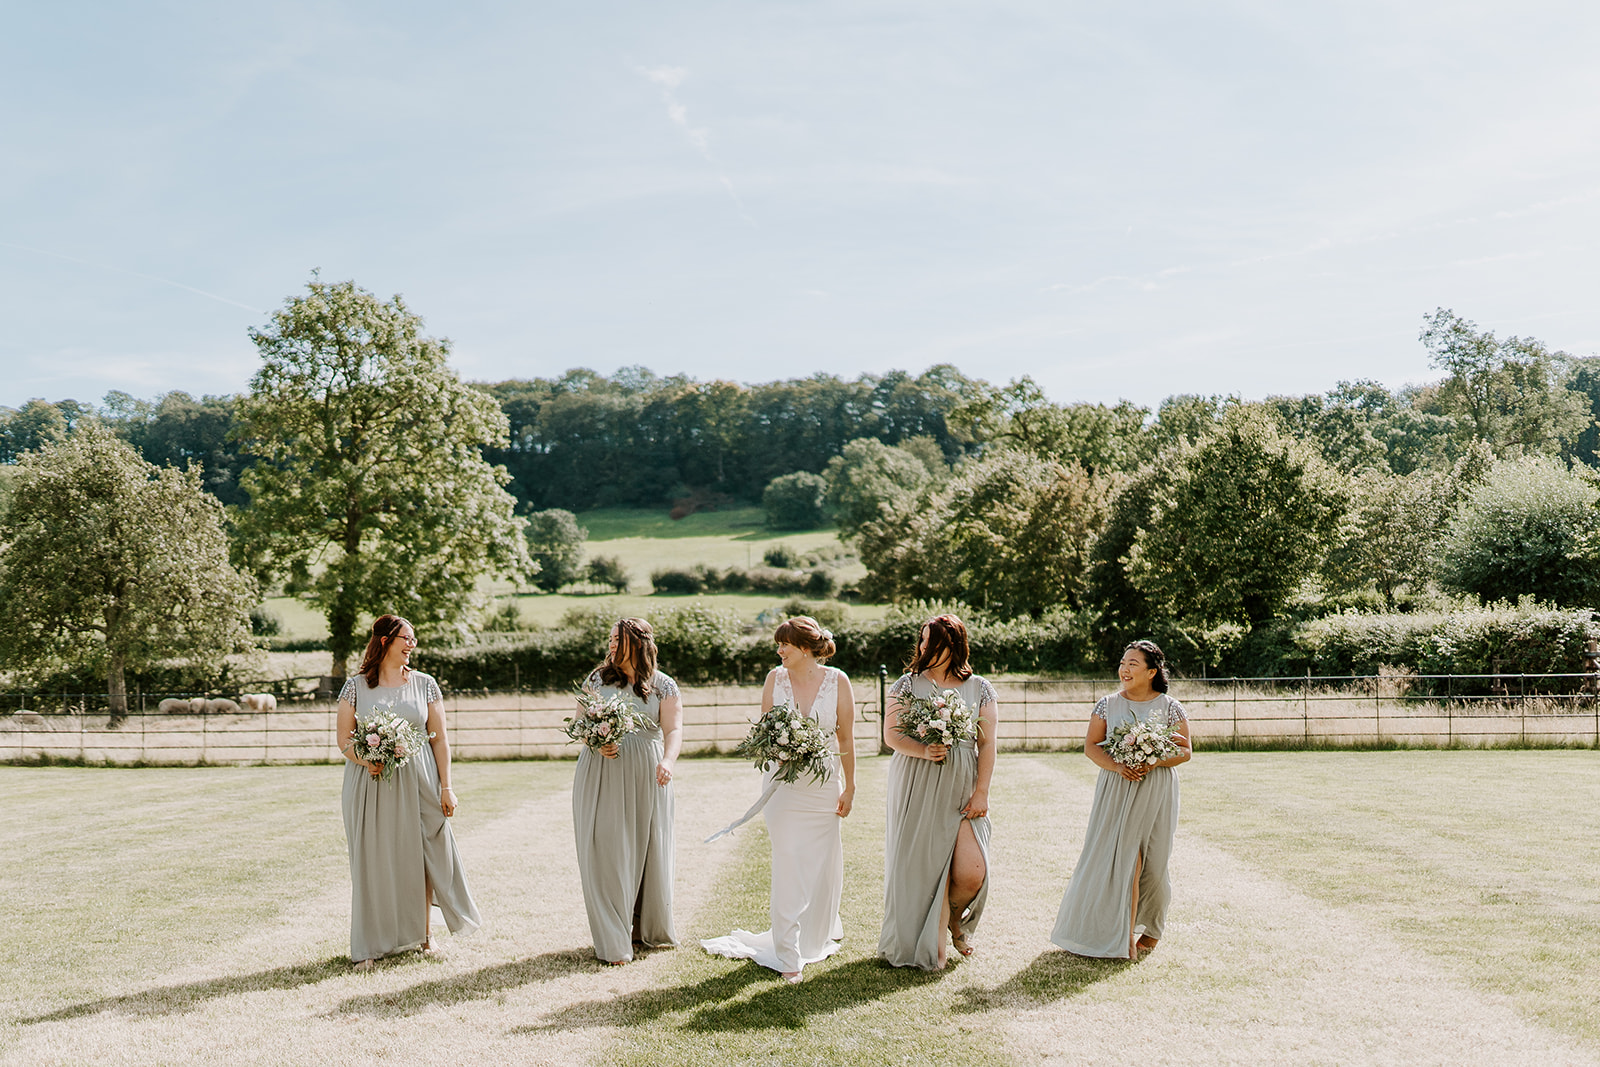 bride and bridesmaids laughing in sage green dresses with flowers